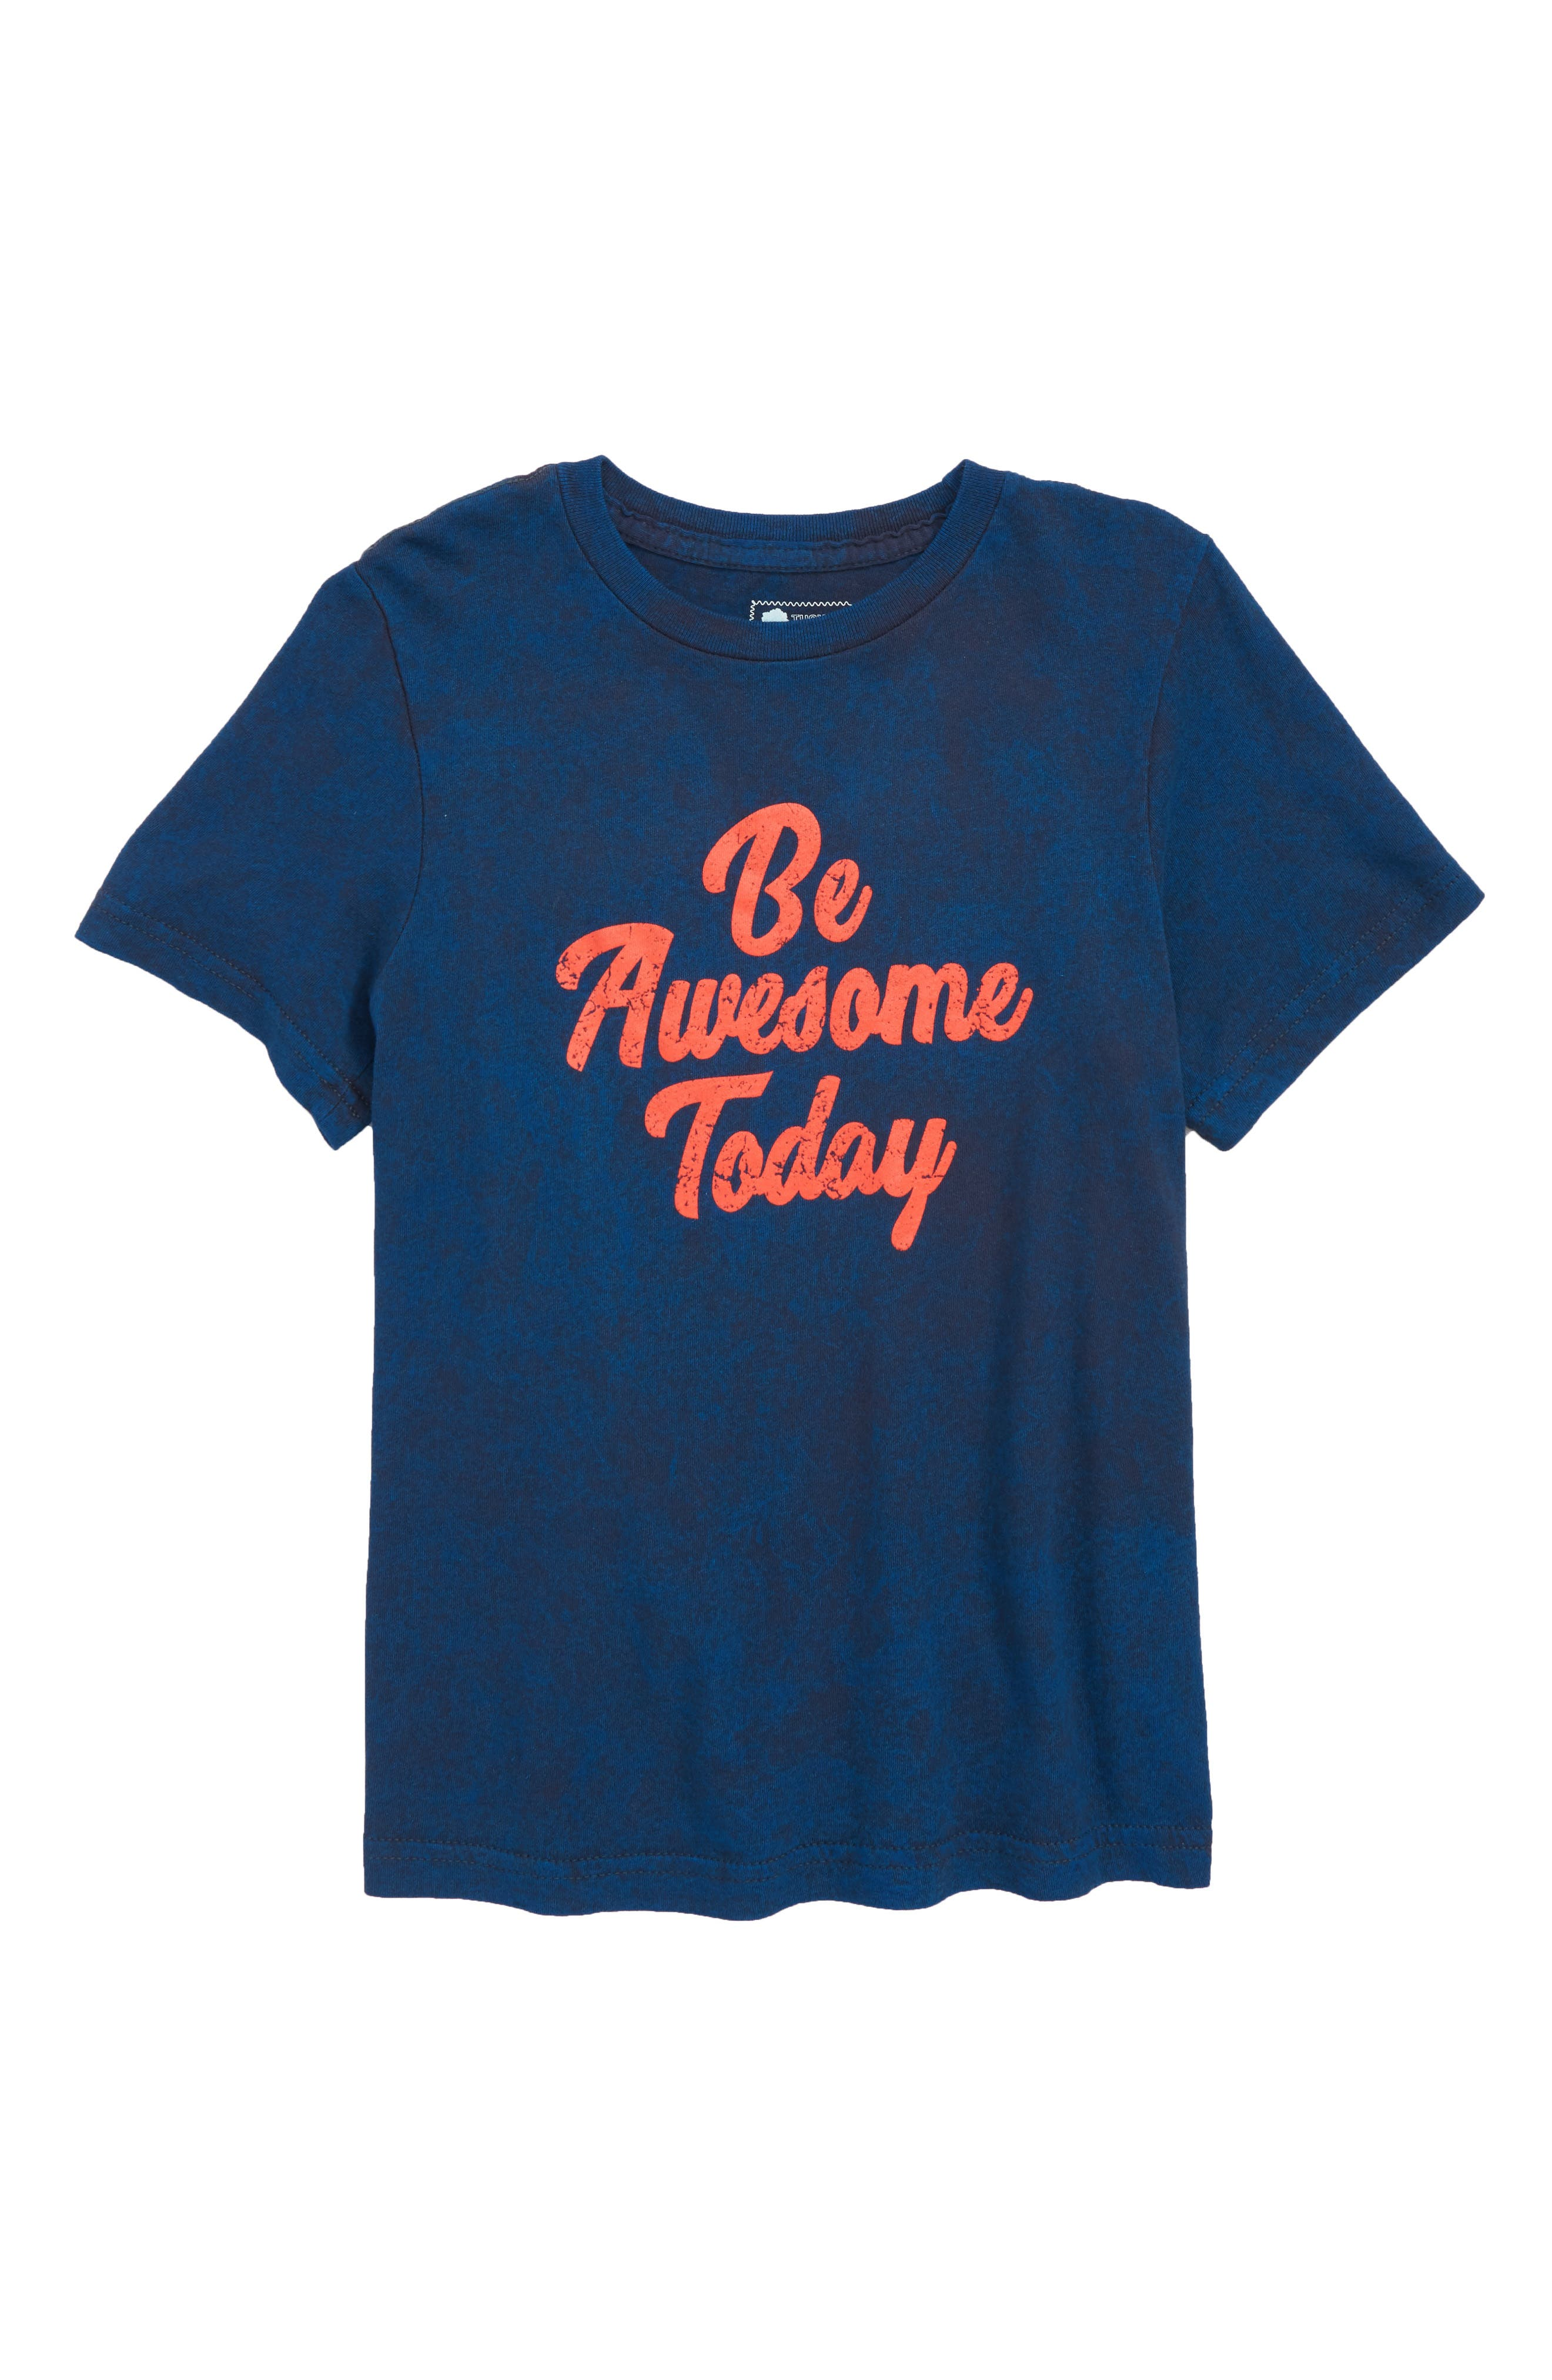 Graphic T-Shirt,                             Main thumbnail 1, color,                             BLUE WING BE AWESOME